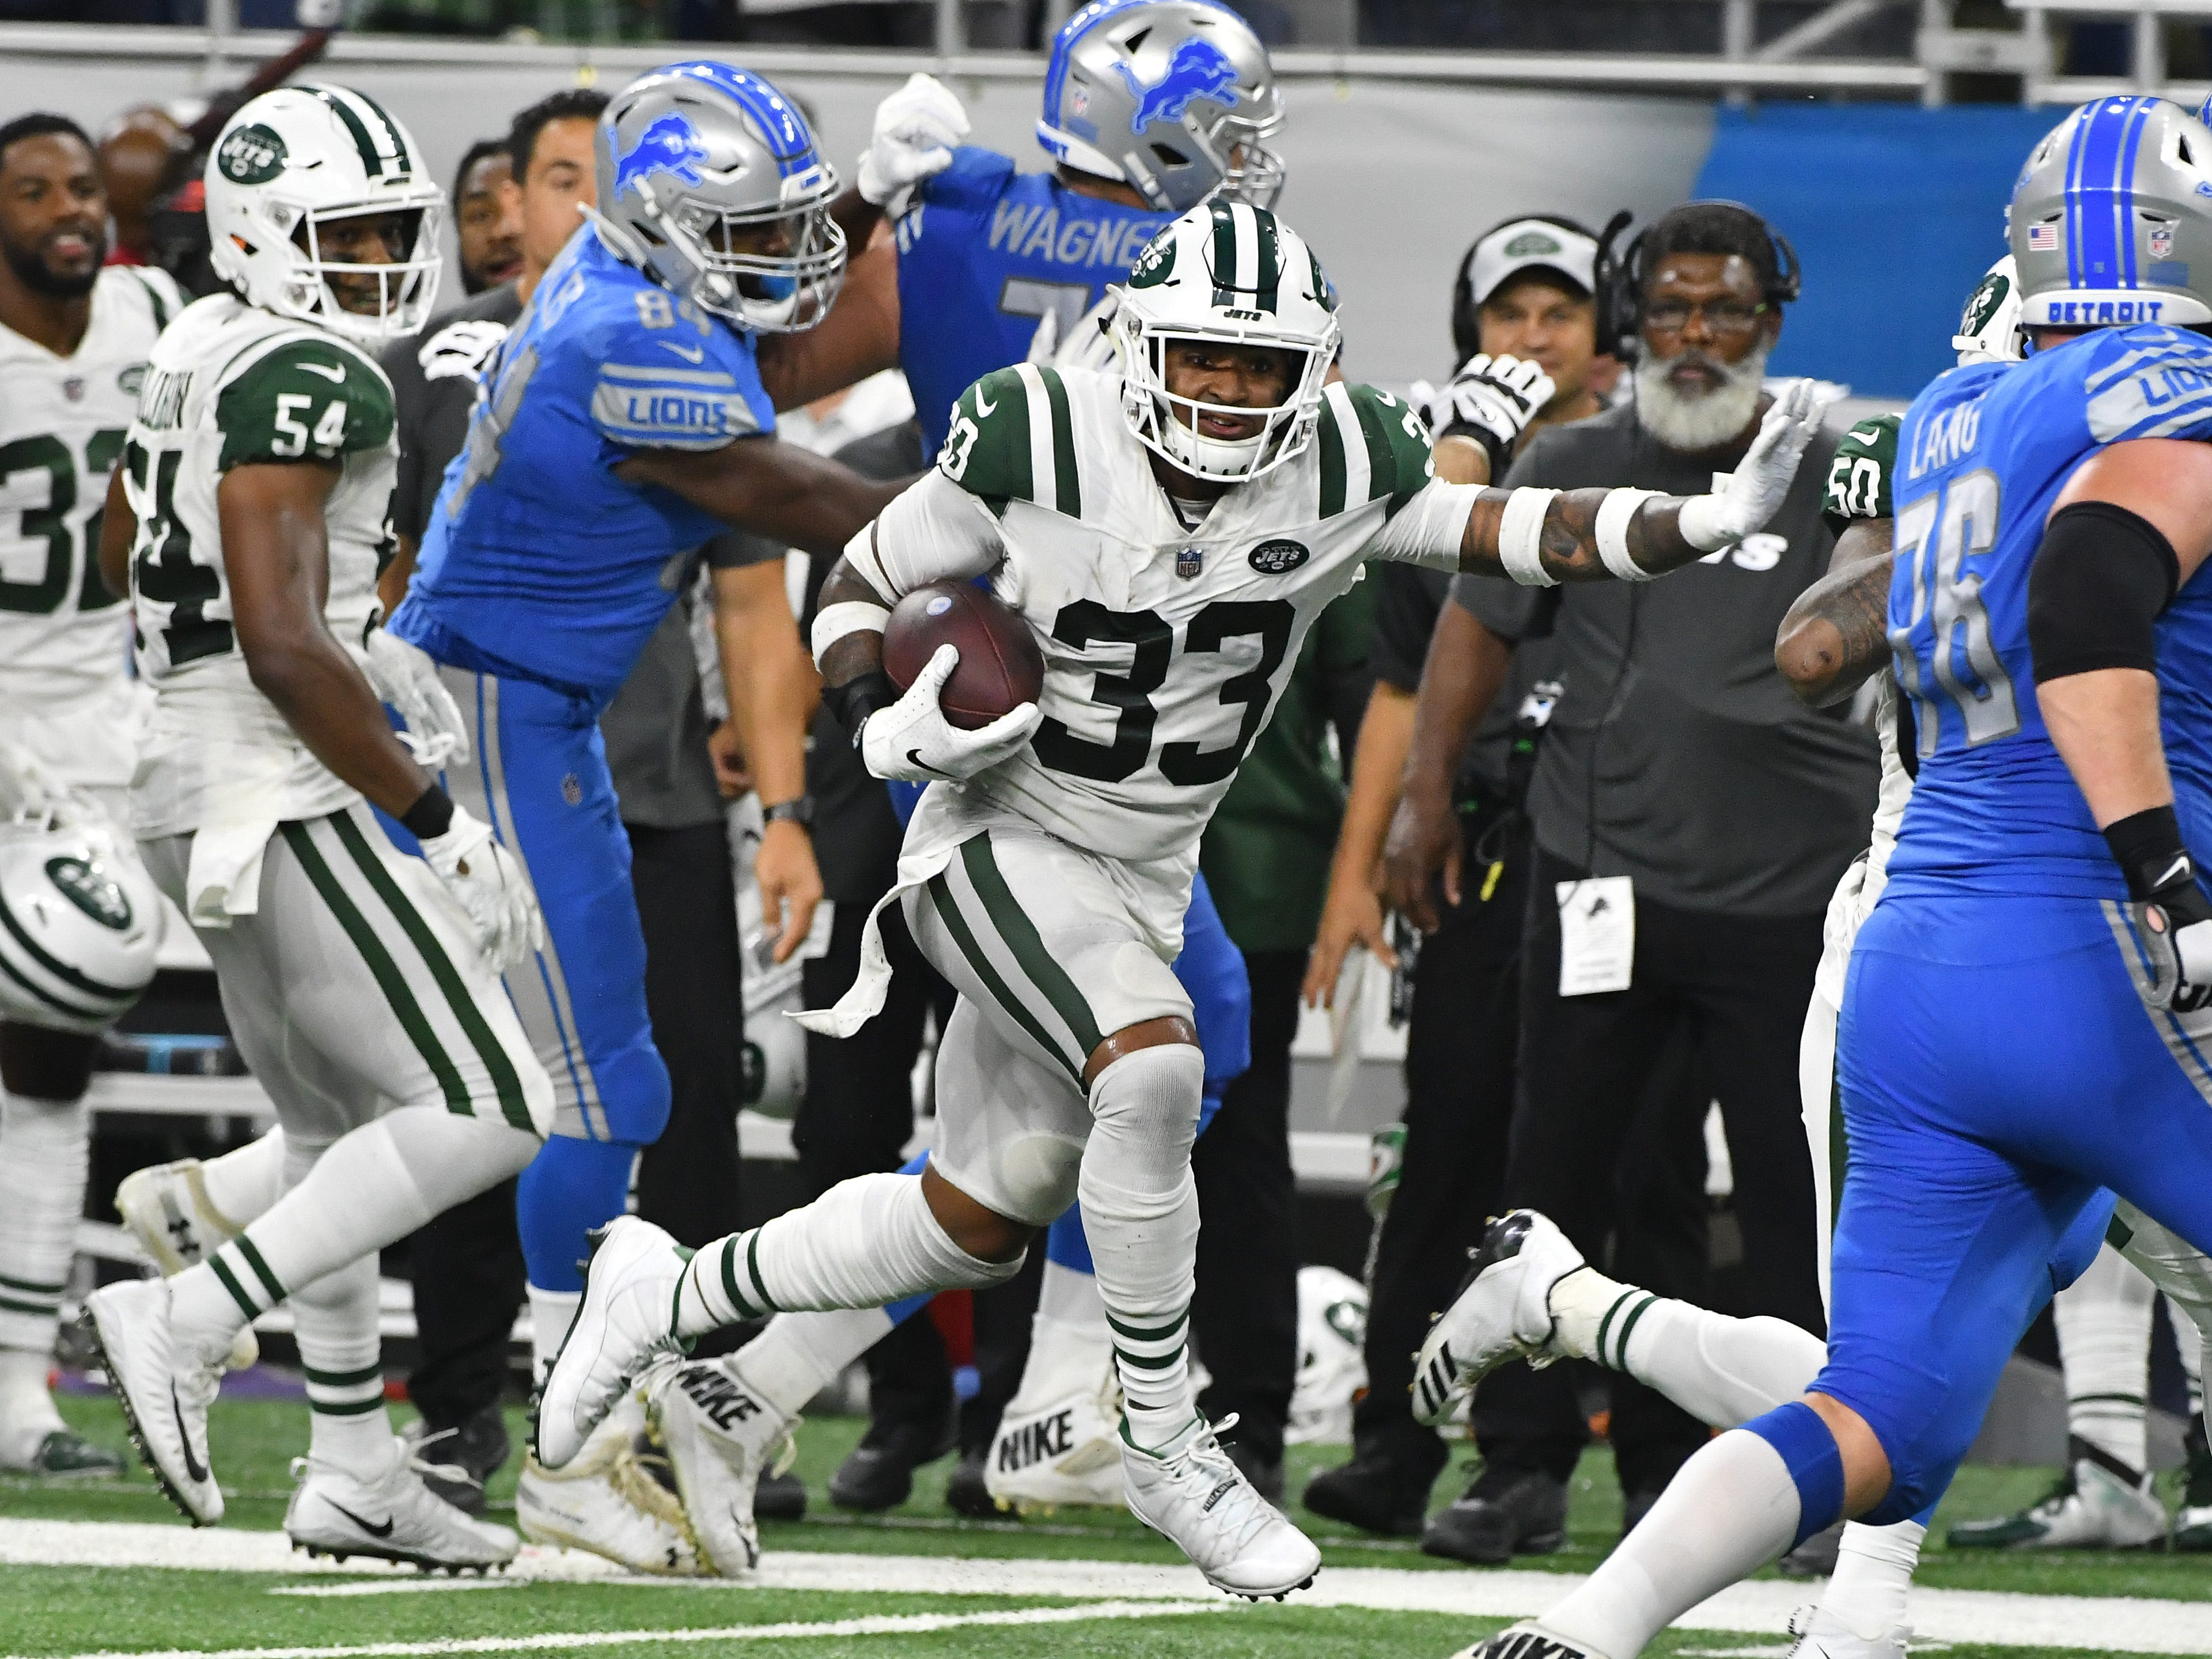 Jets' Jamal Adams intercepts a Lions quarterback Matt Cassel pass late in the fourth quarter.